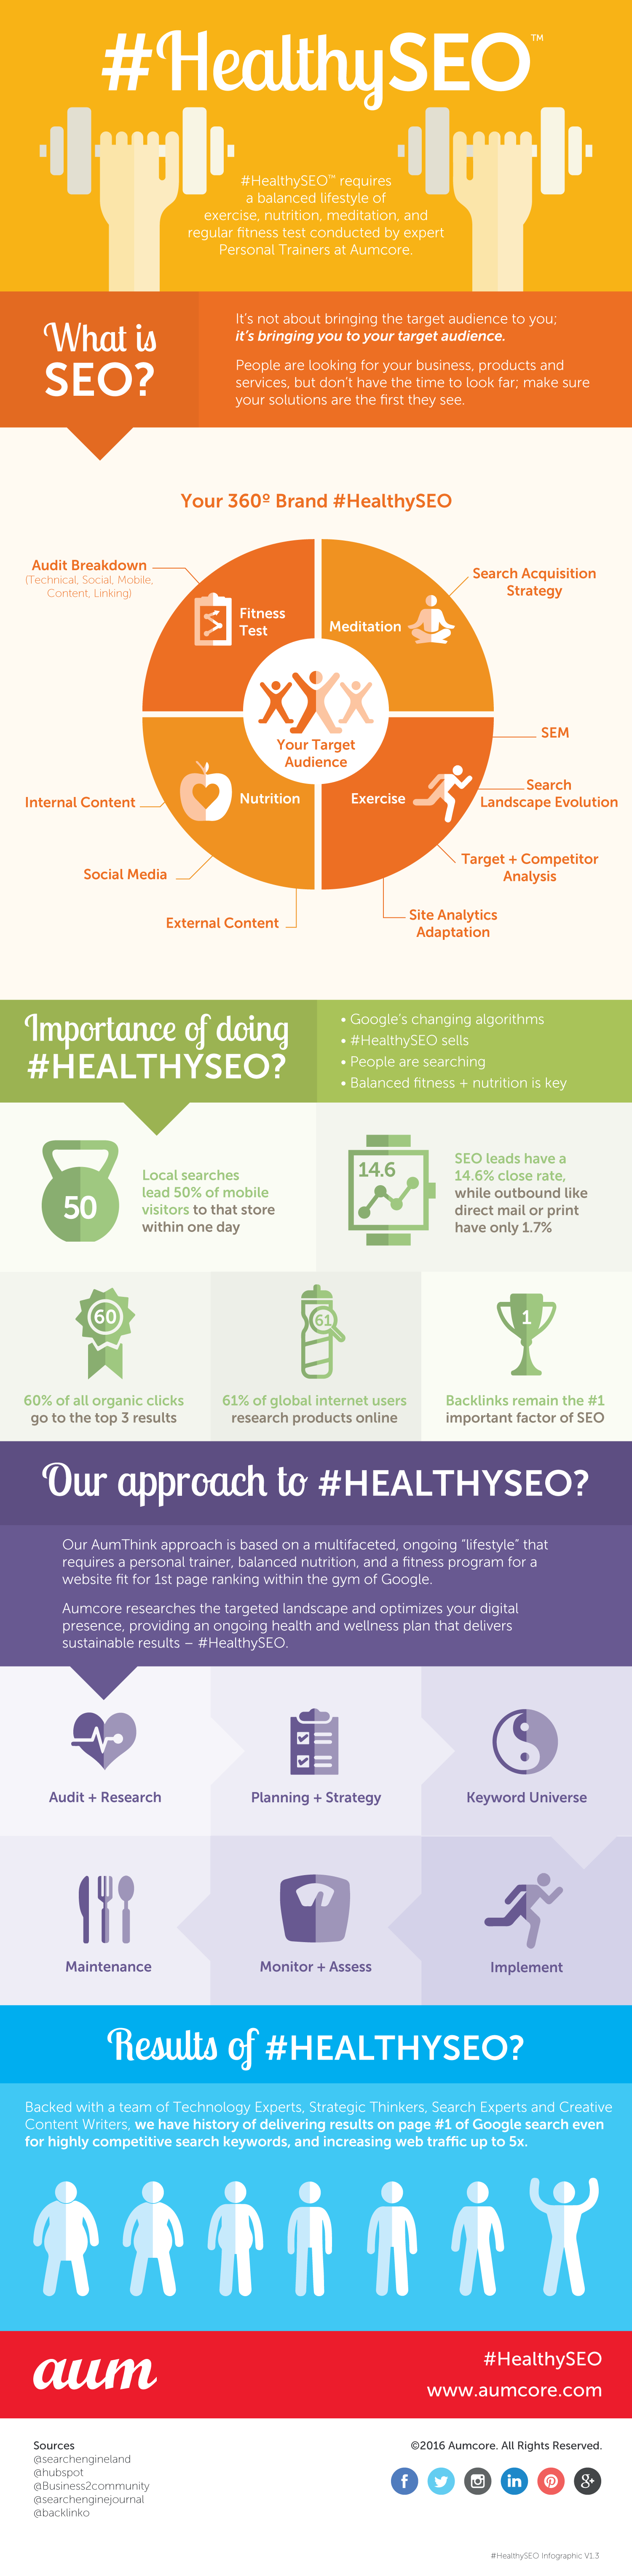 #HealthySEO - A Way To Keep your Website Healthy Infographic